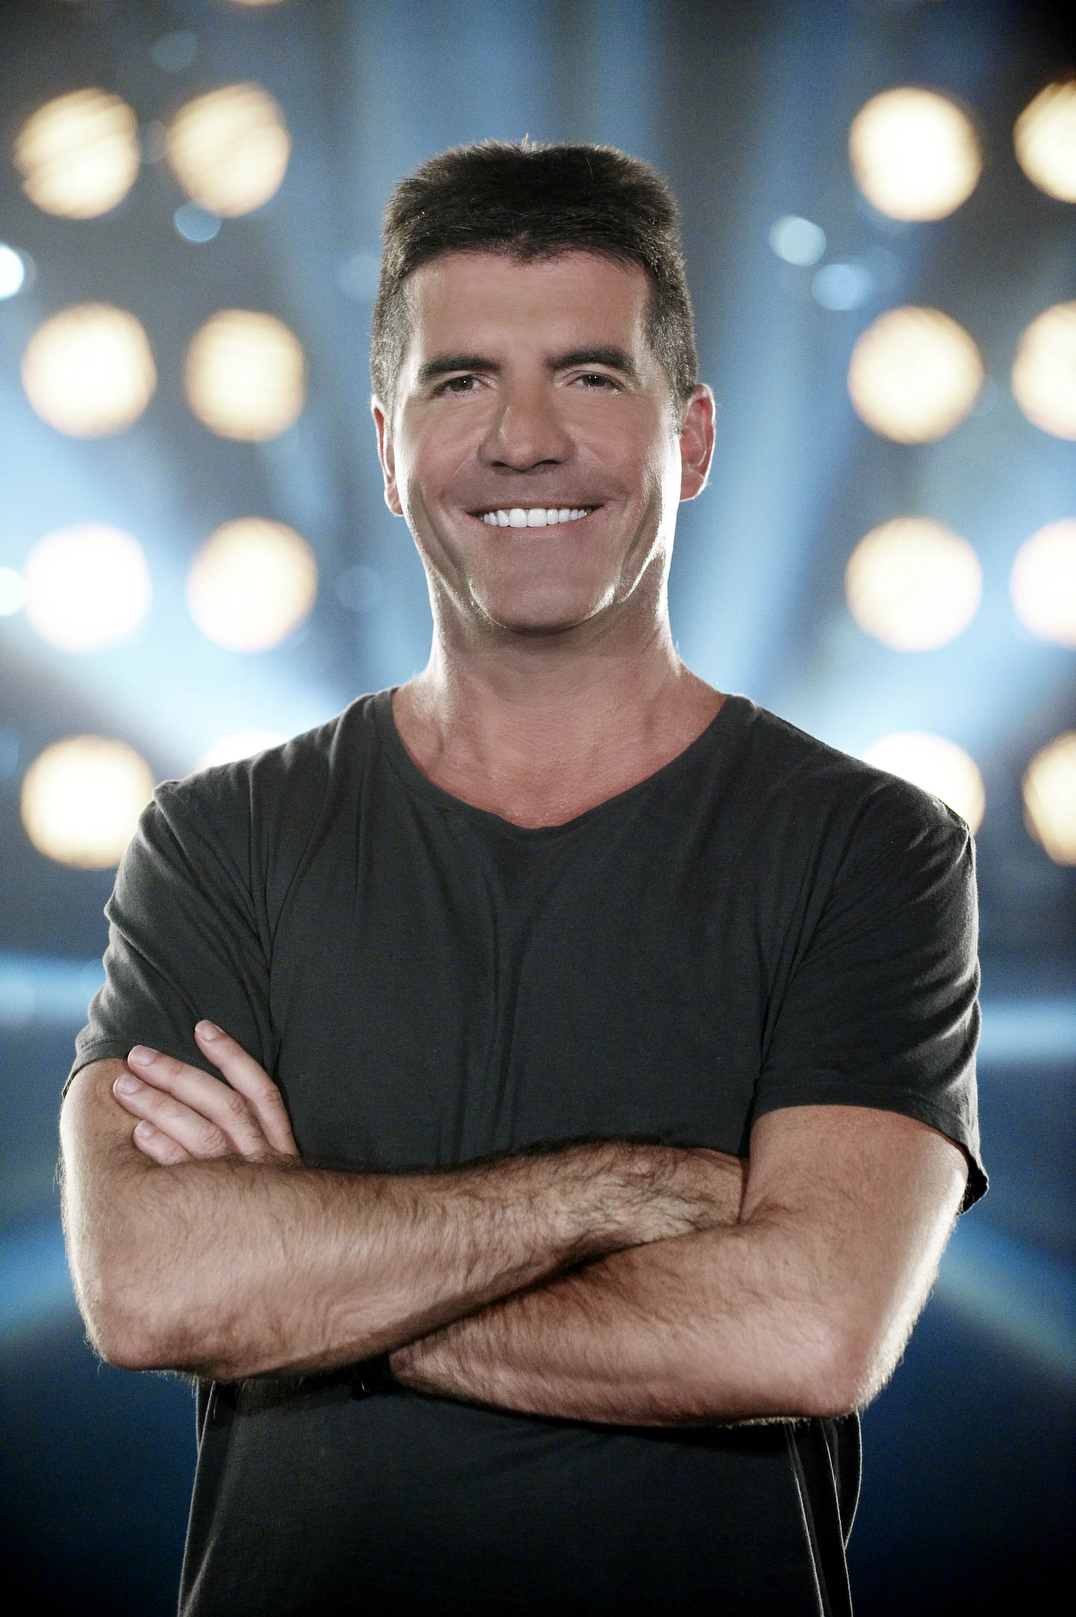 Cowell 'embarrassed' by X Factor leaks (VIDEO)